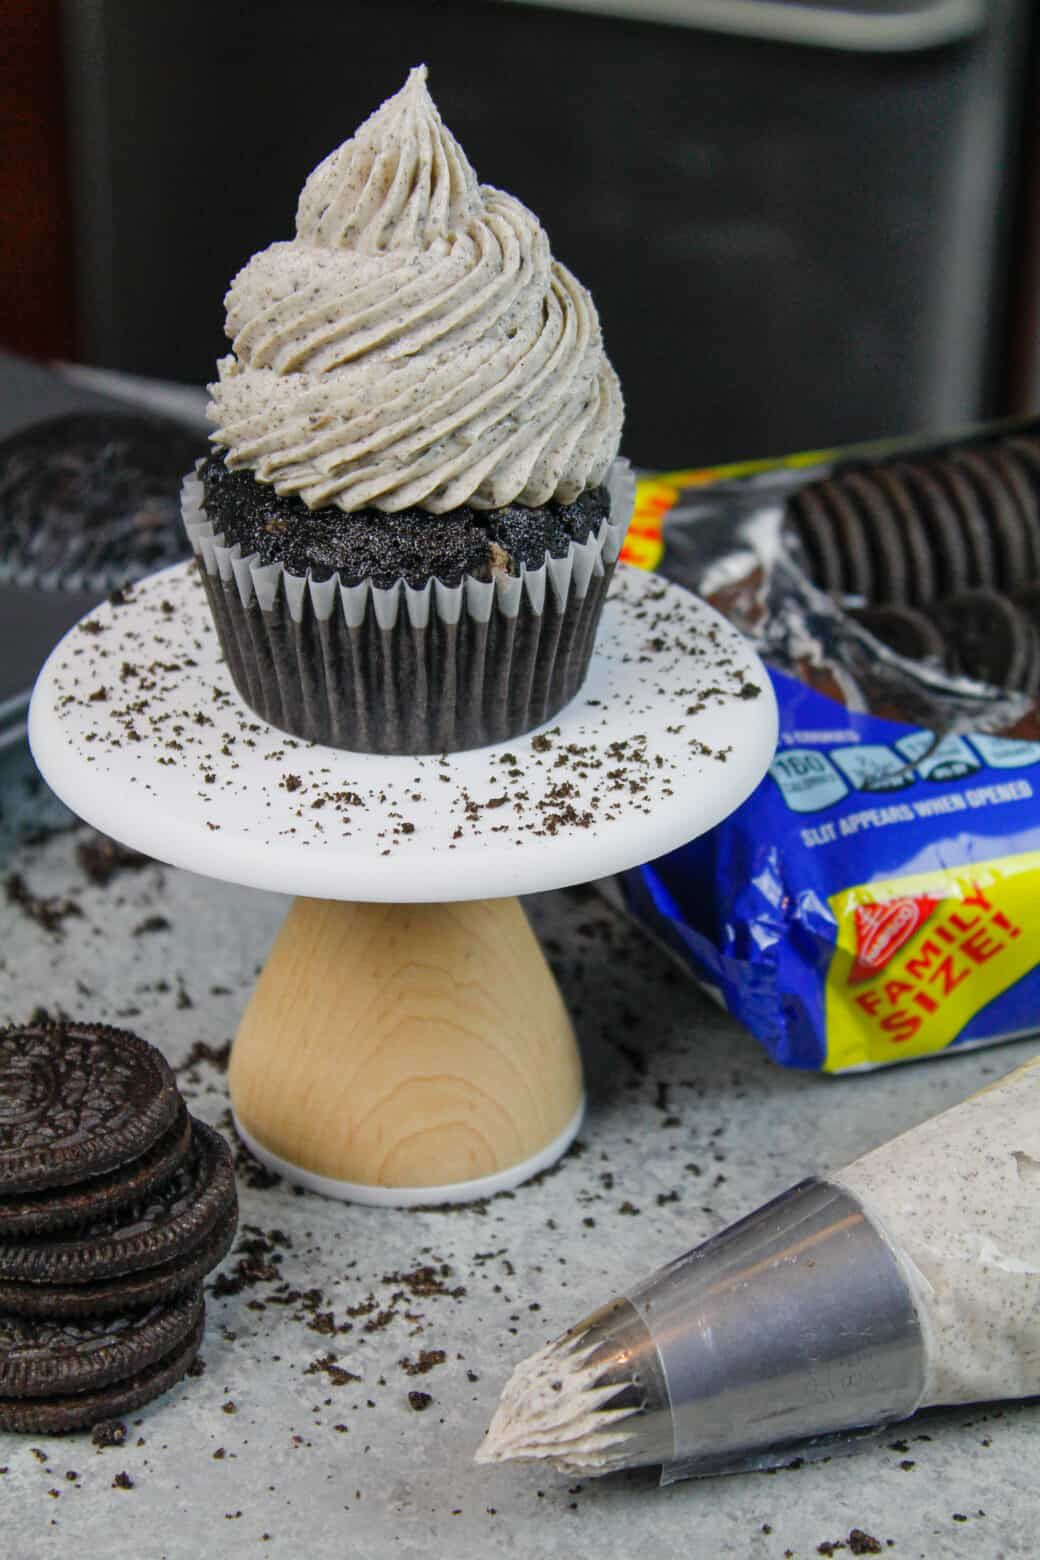 Oreo Cupcakes: Moist Chocolate Cupcakes Topped with Oreo Frosting